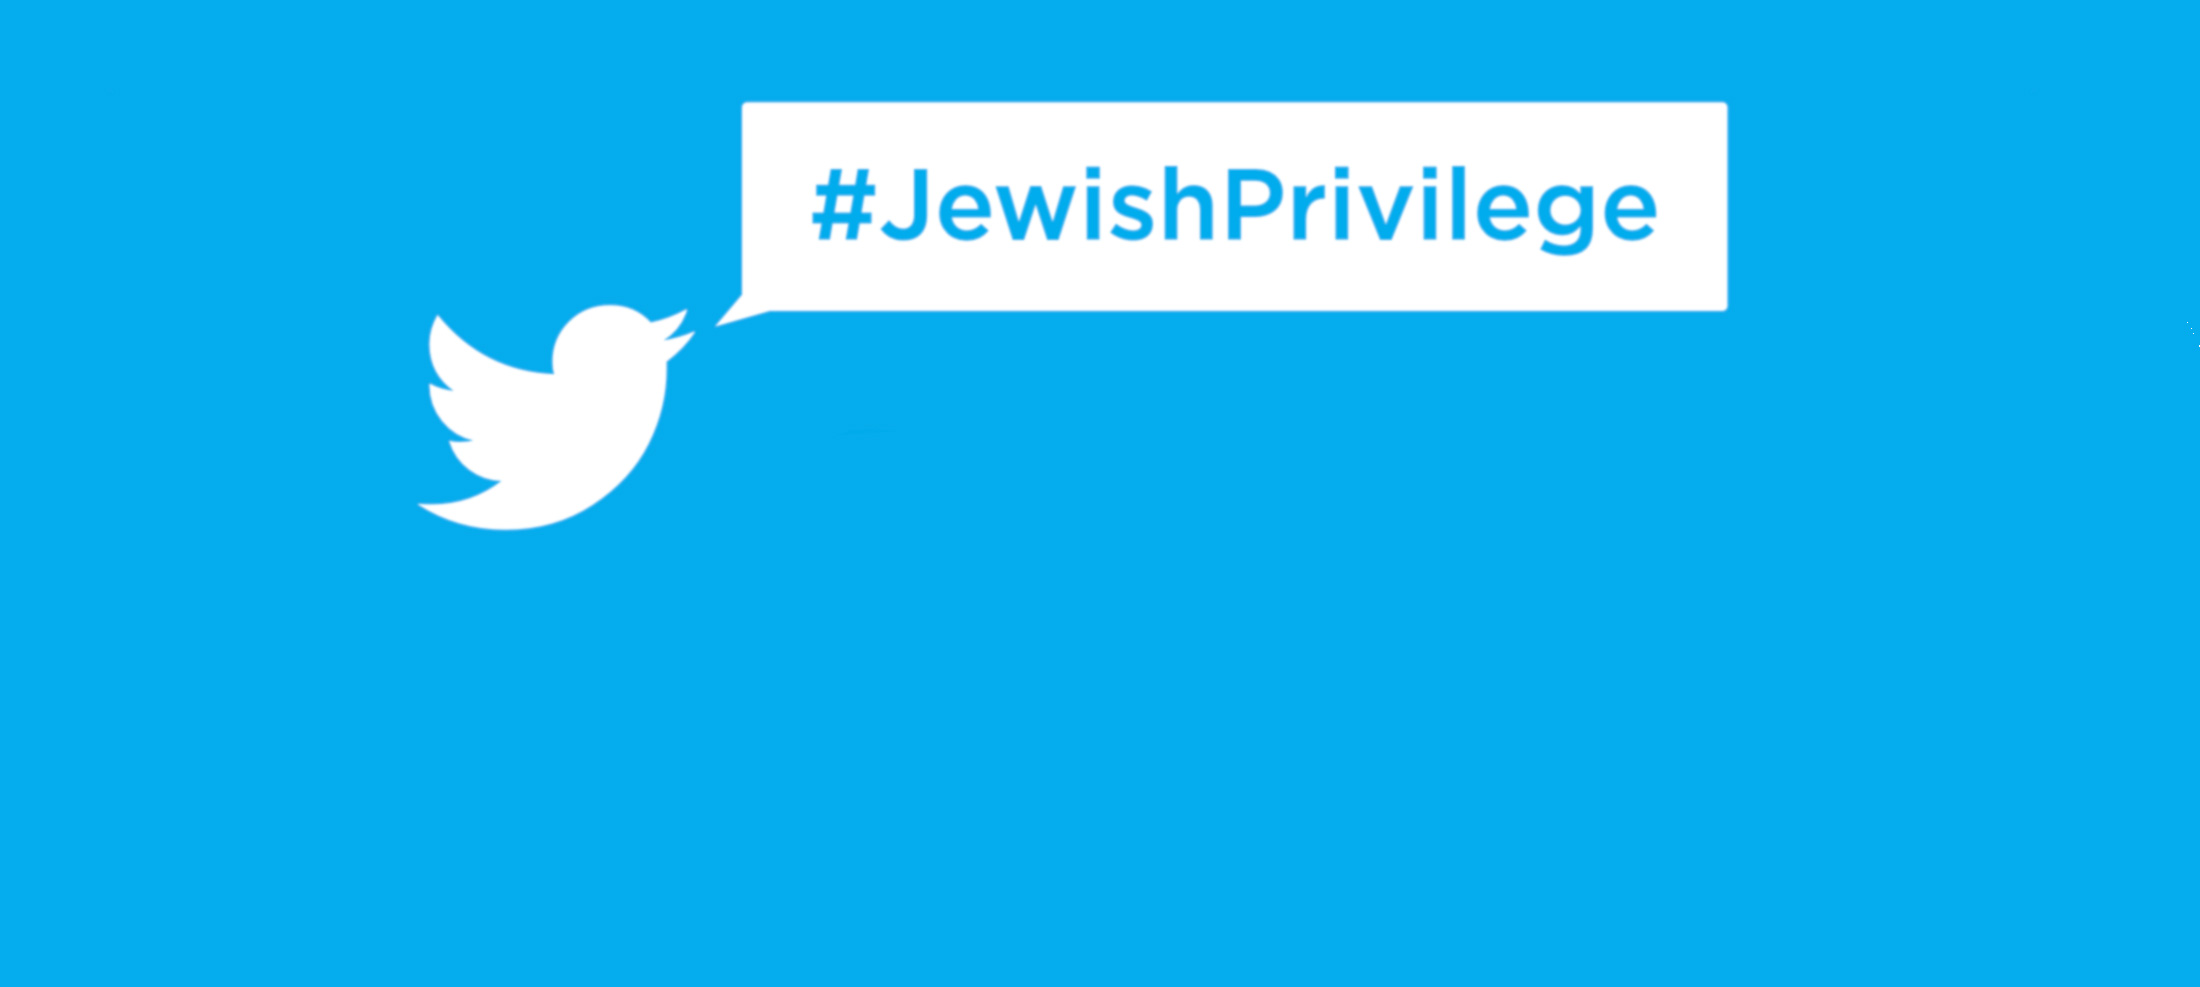 Michael Brown on What Jewish Privilege Really Looks Like